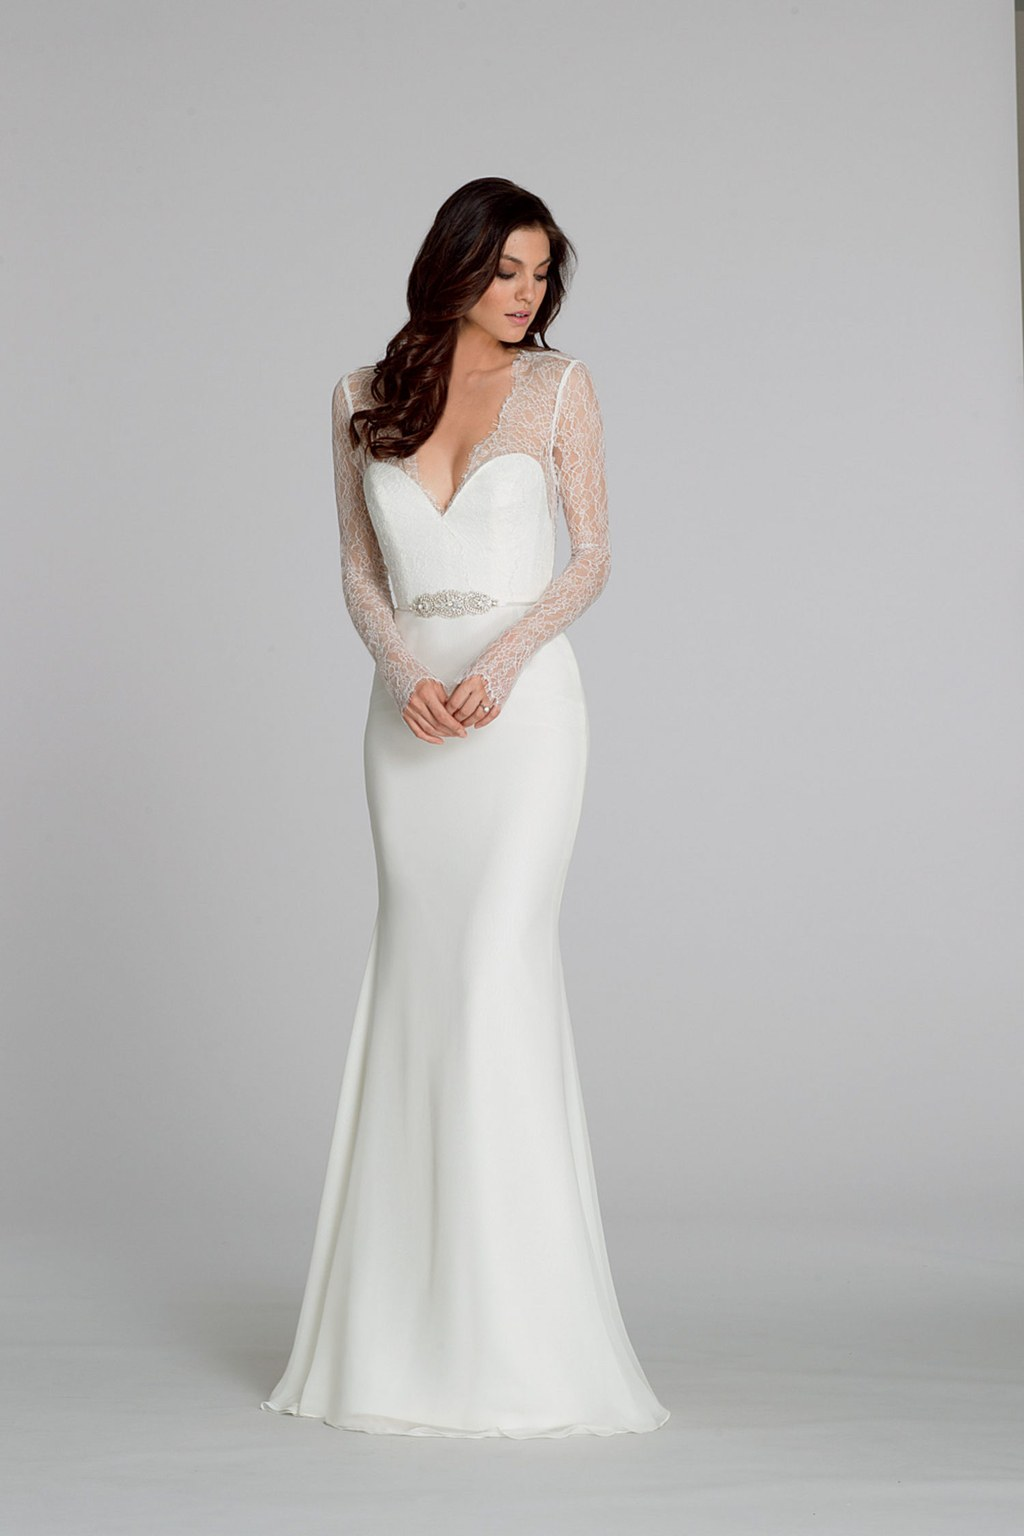 Sheath wedding dress with delicate lace sleeves